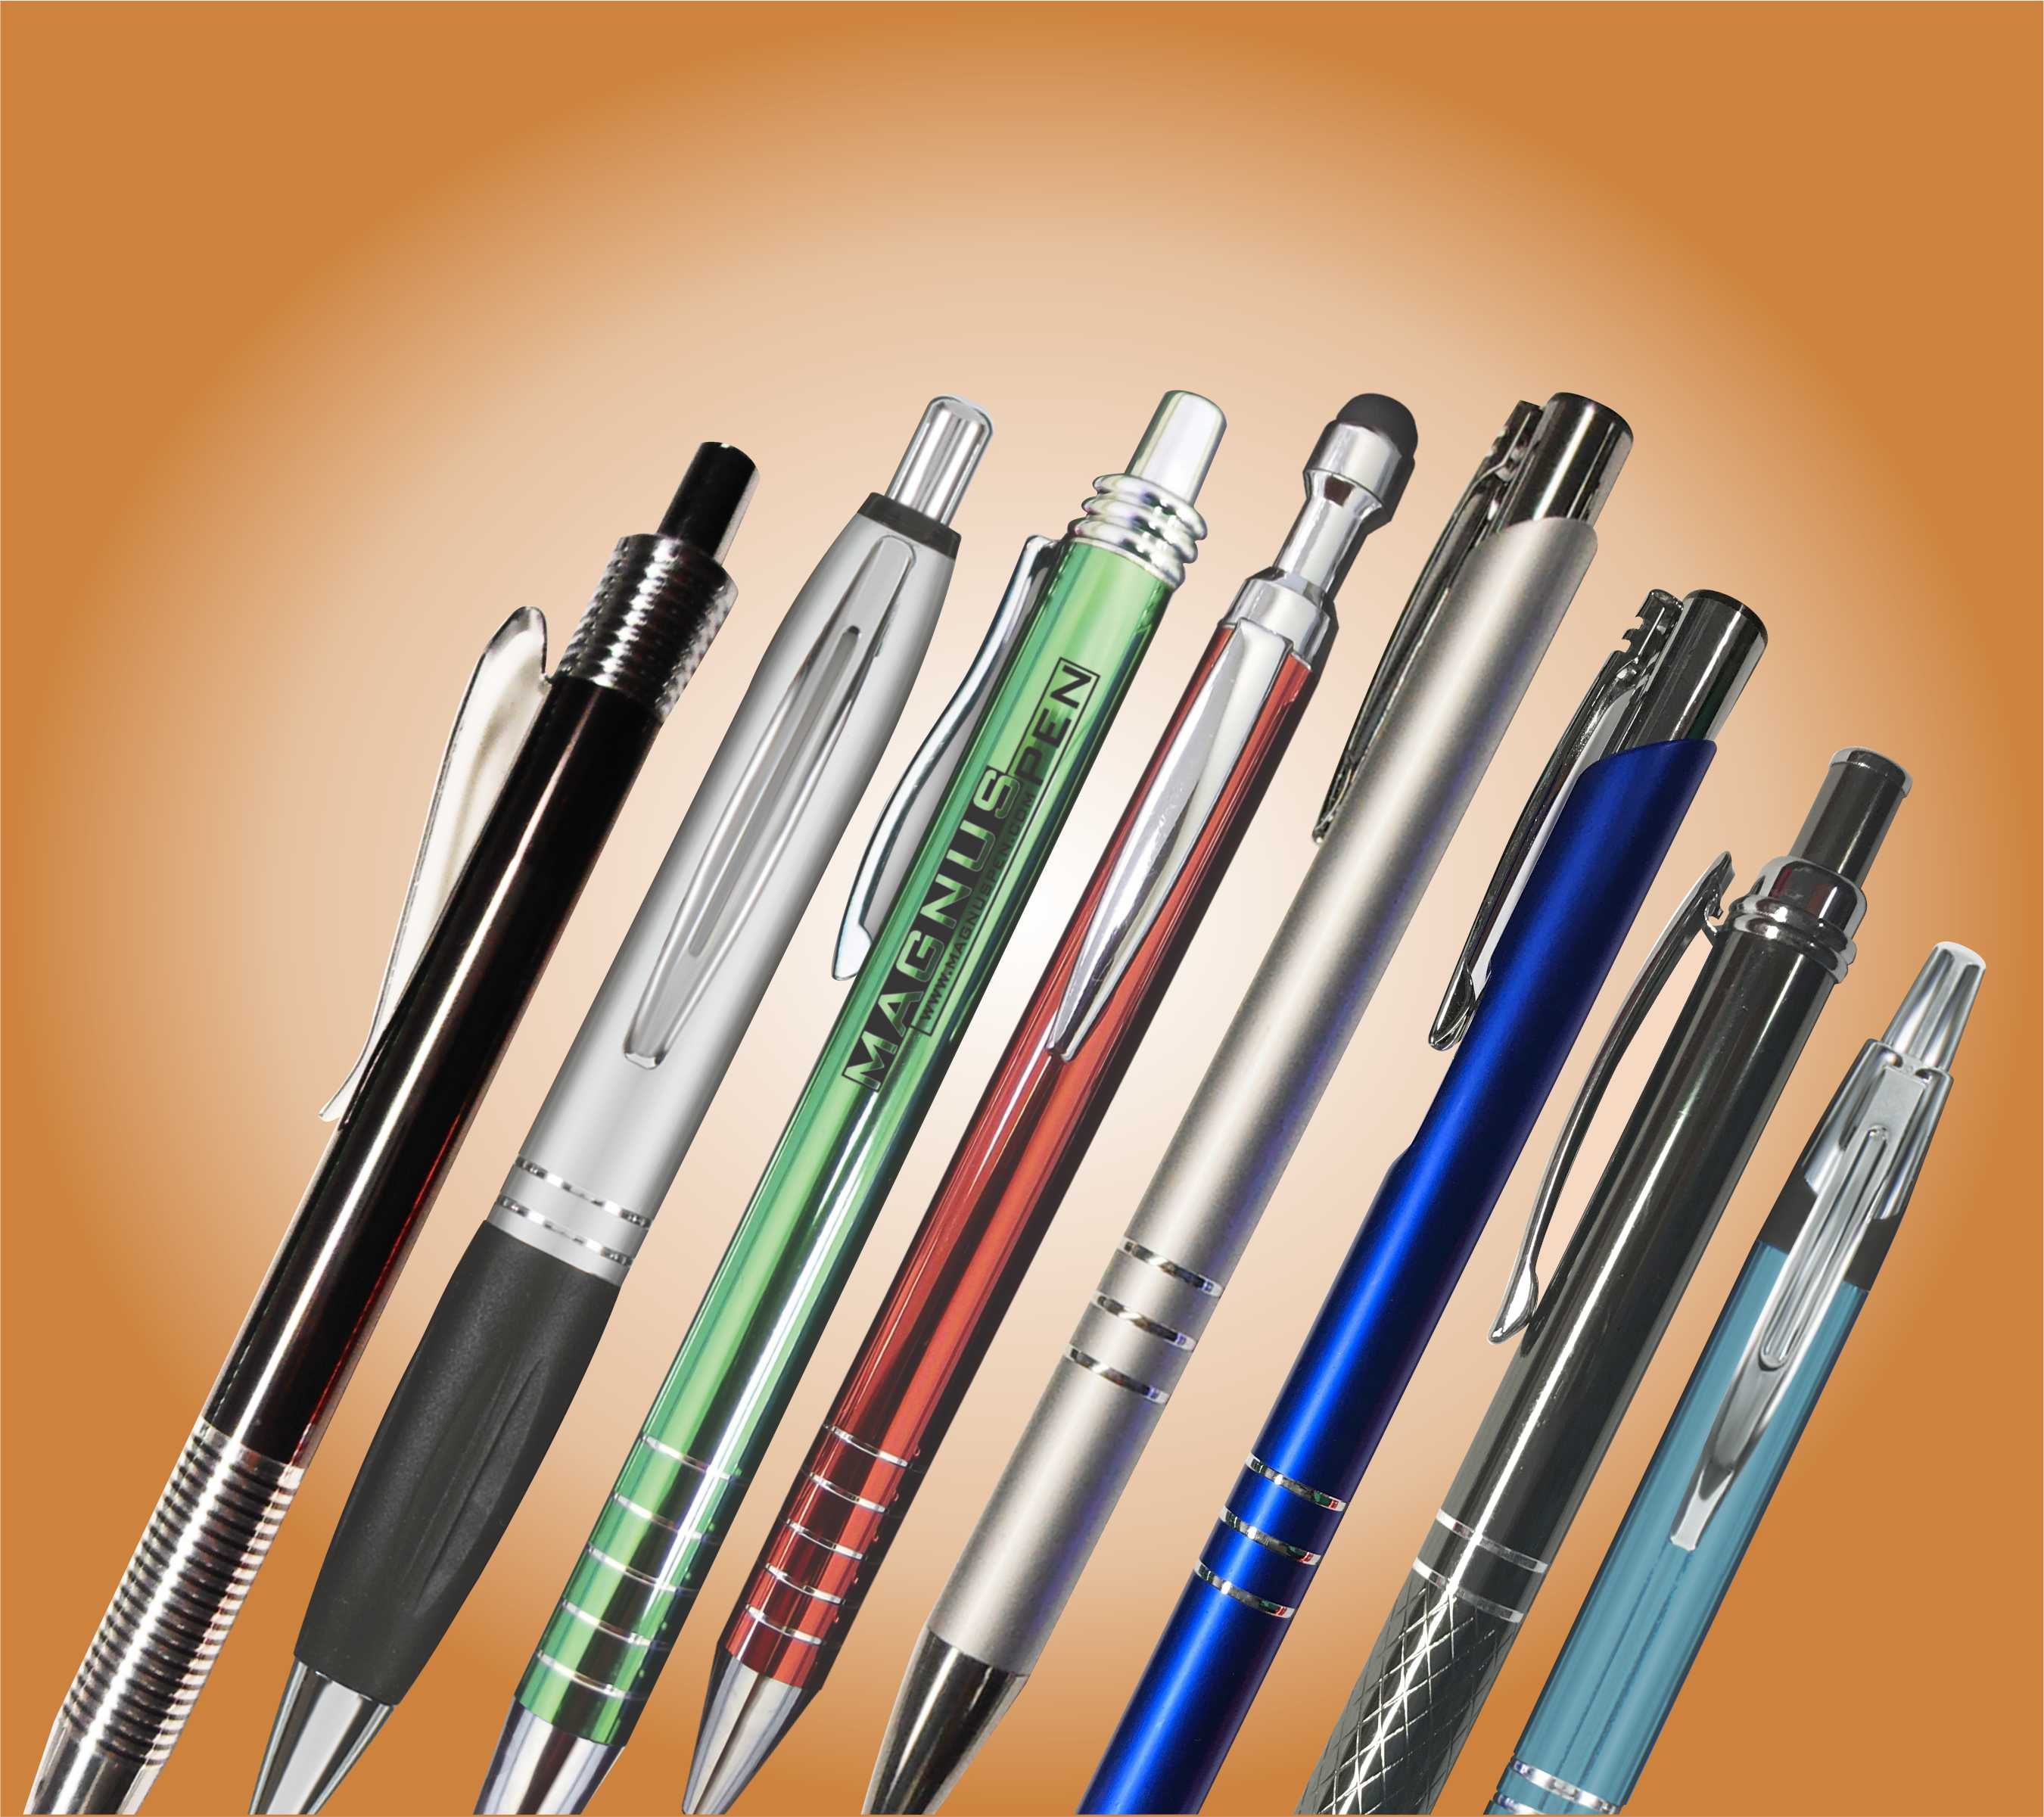 Aluminum Pens are light and easy to use over long periods